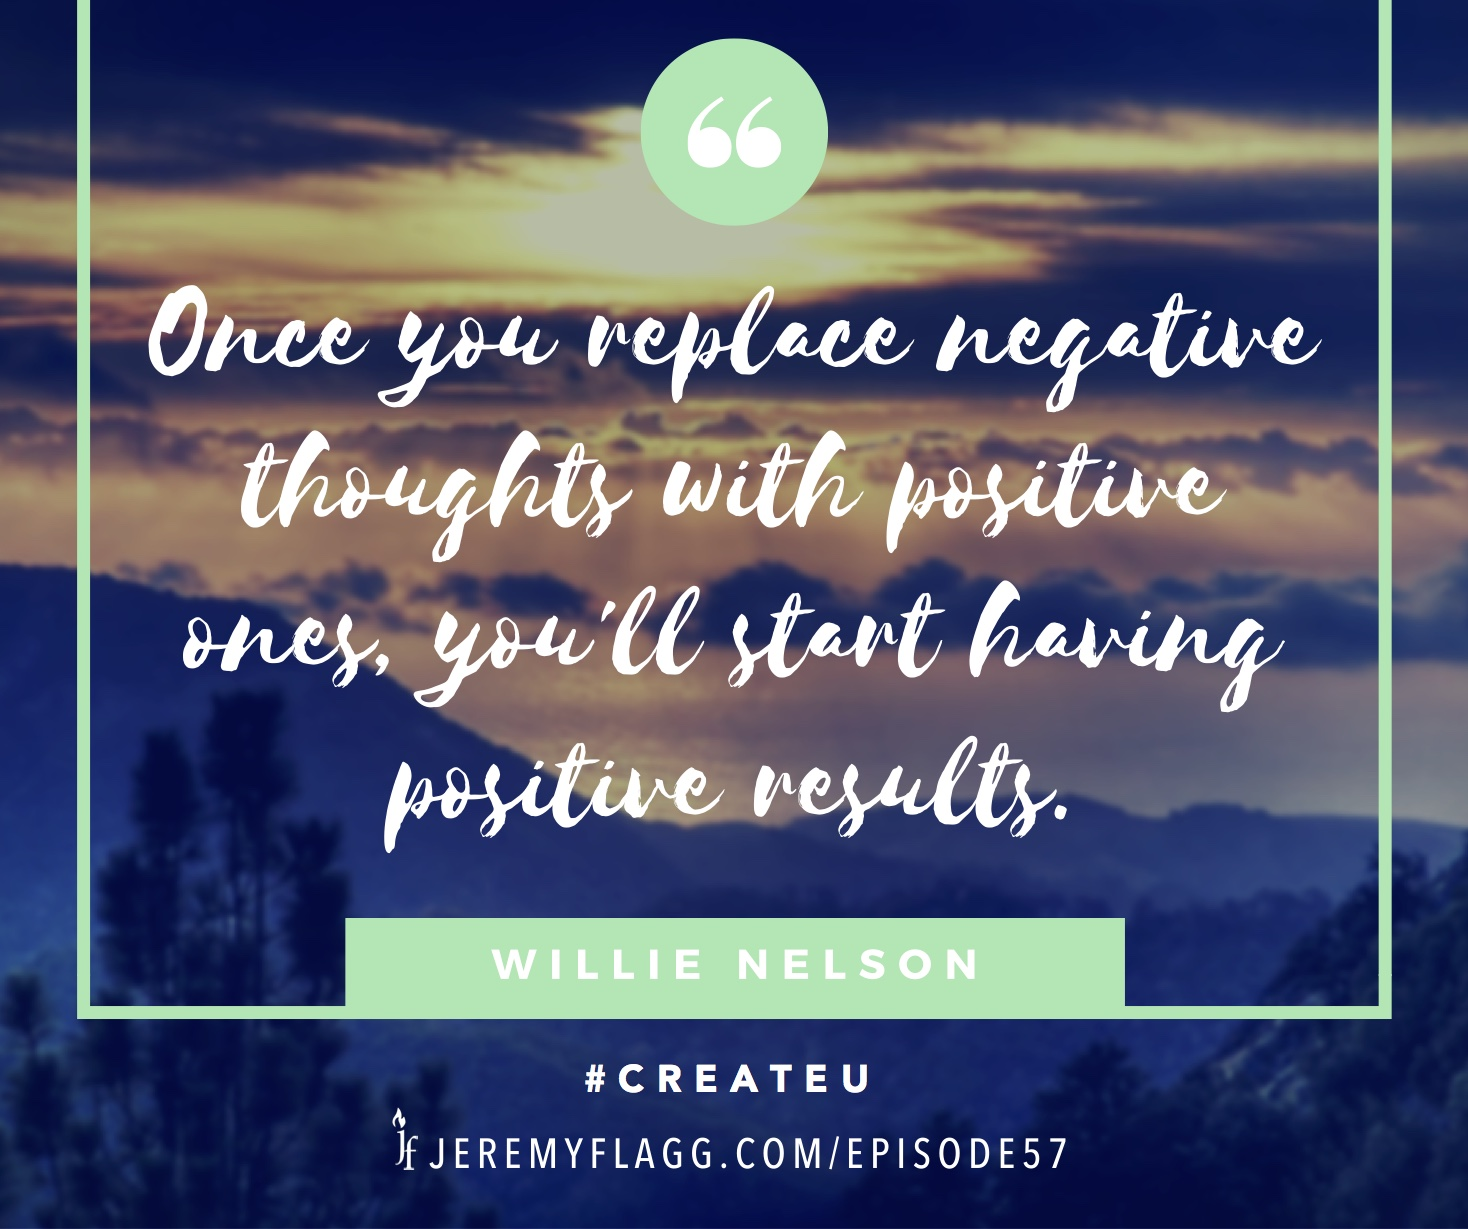 Negative-thoughts-positive-results-Willie-Nelson-quote-FB